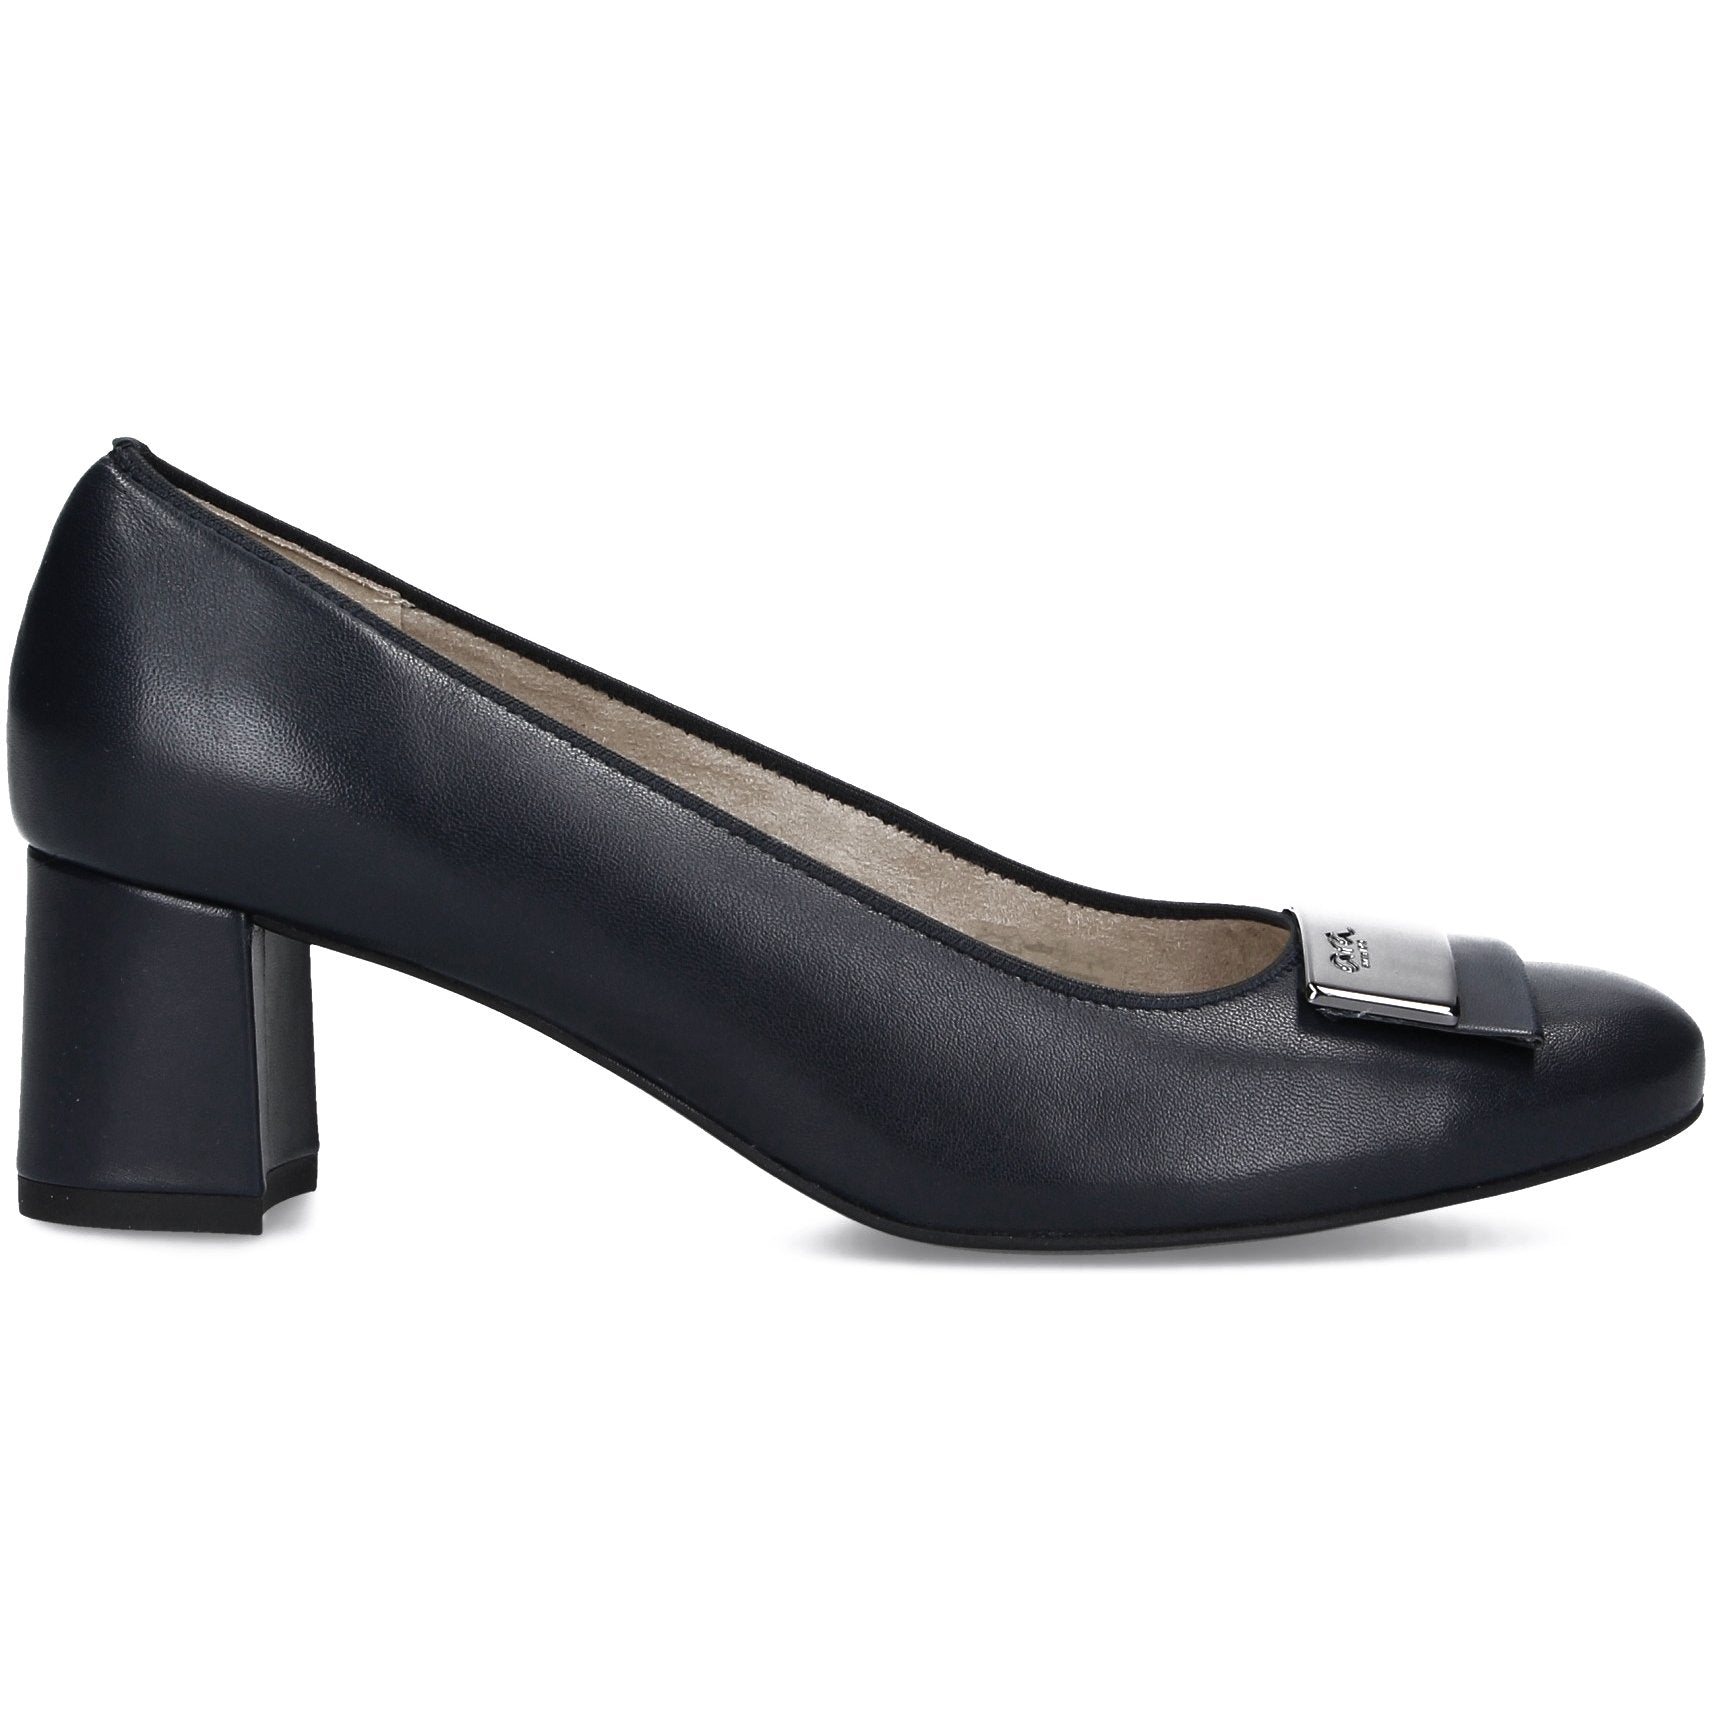 Ara Womens Black Brighton Heels 12-35512-71 | Vilbury London